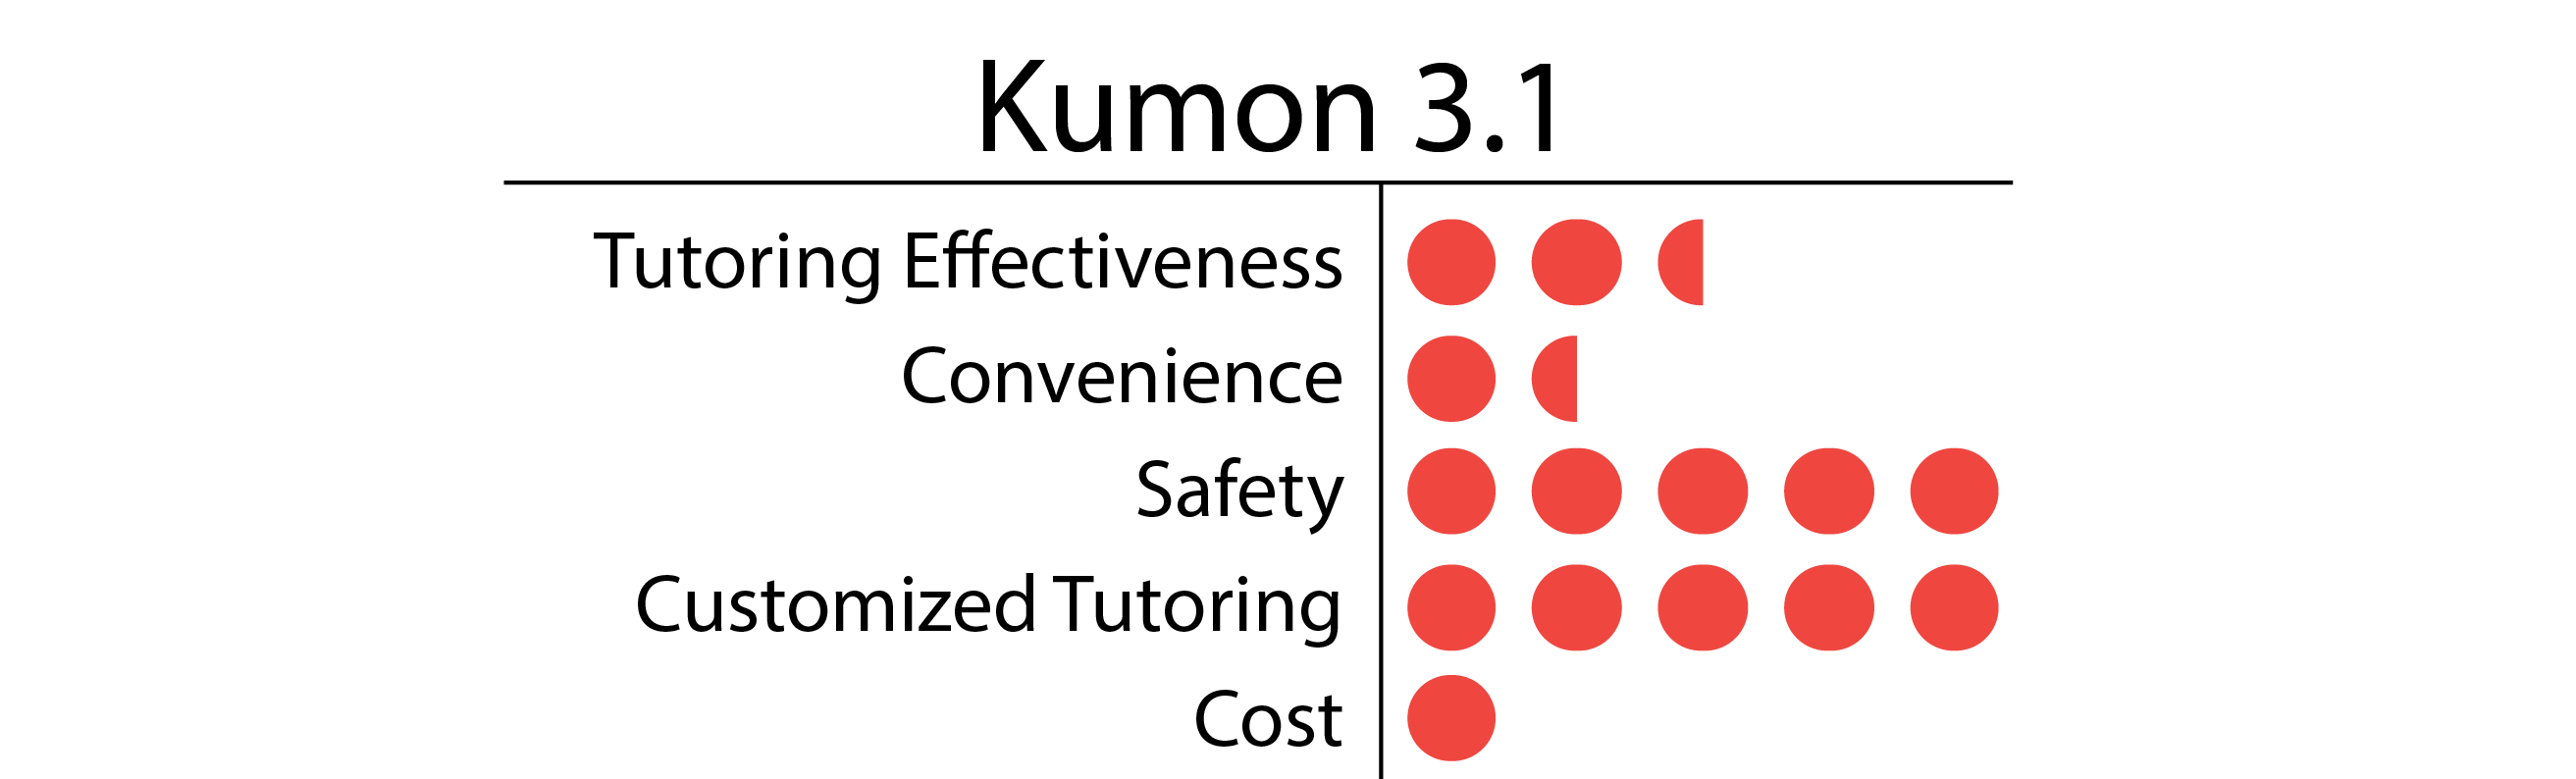 How Much Does Tutoring Cost